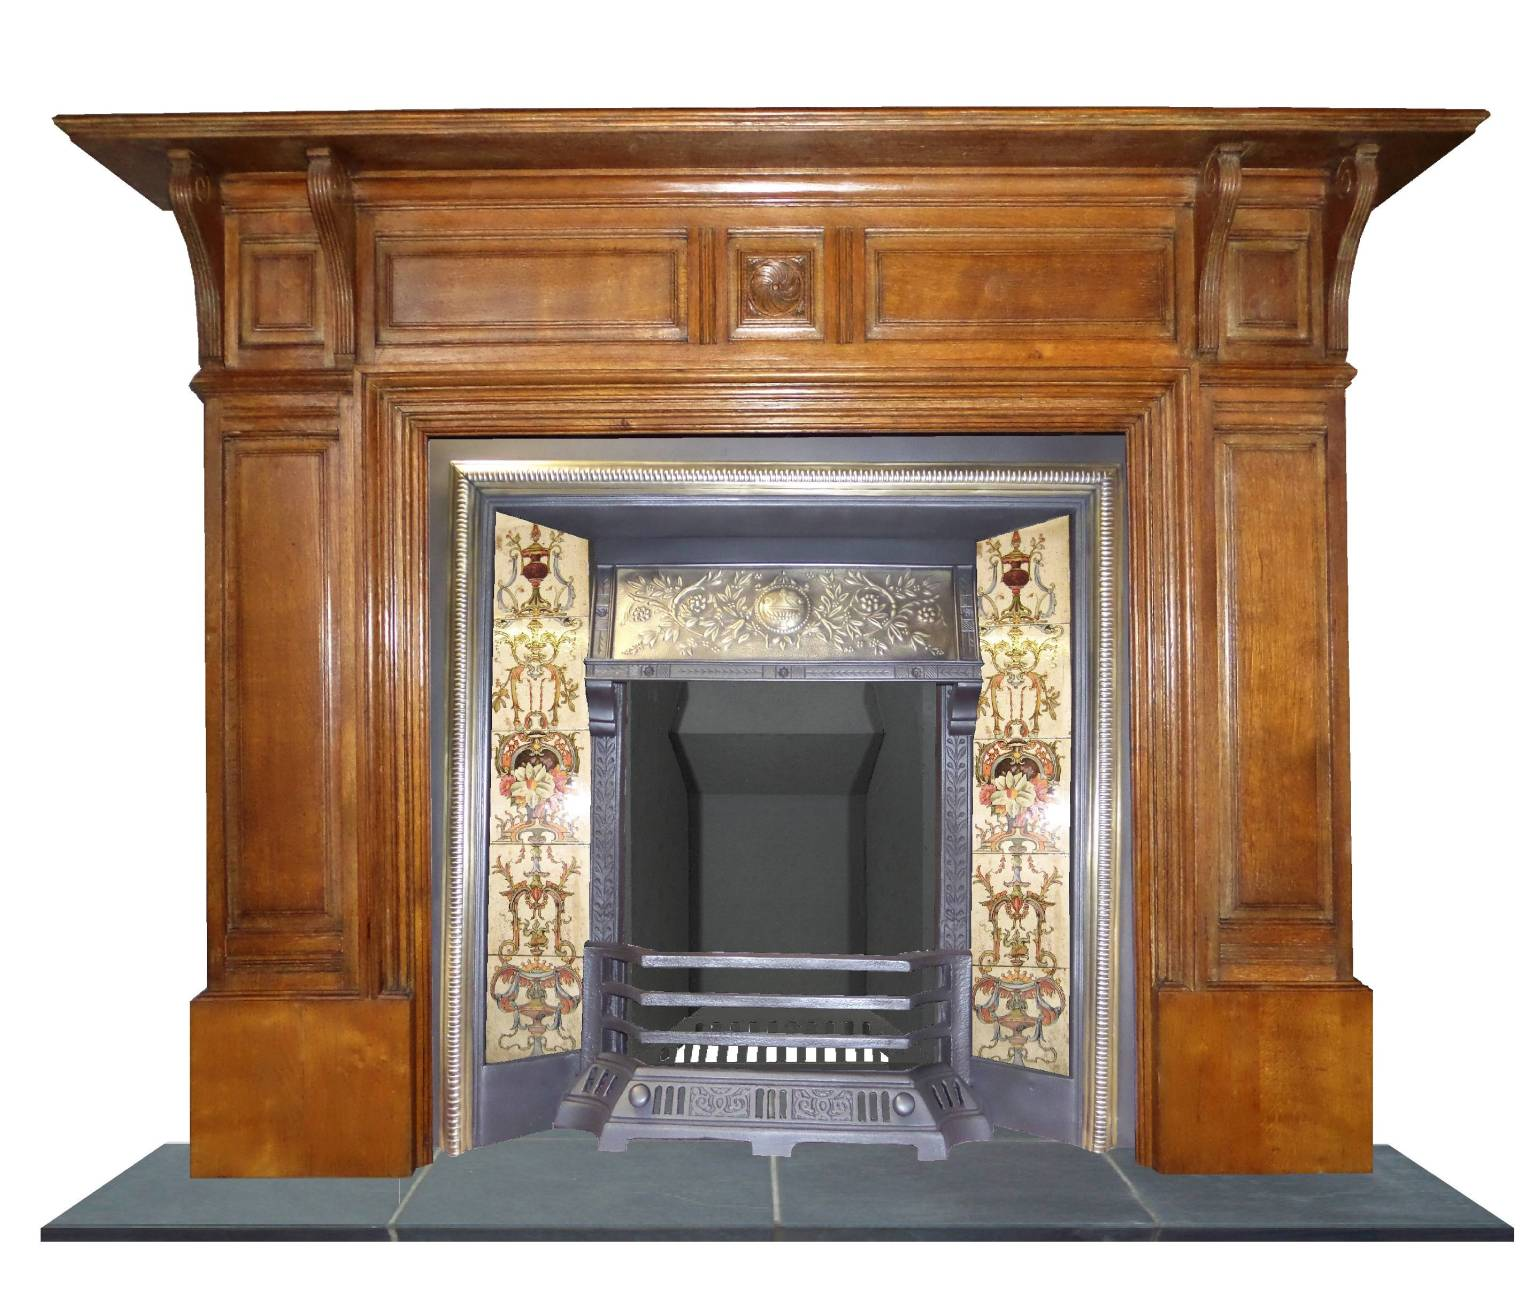 Antique edwardian oak wood mantel fireplace surround